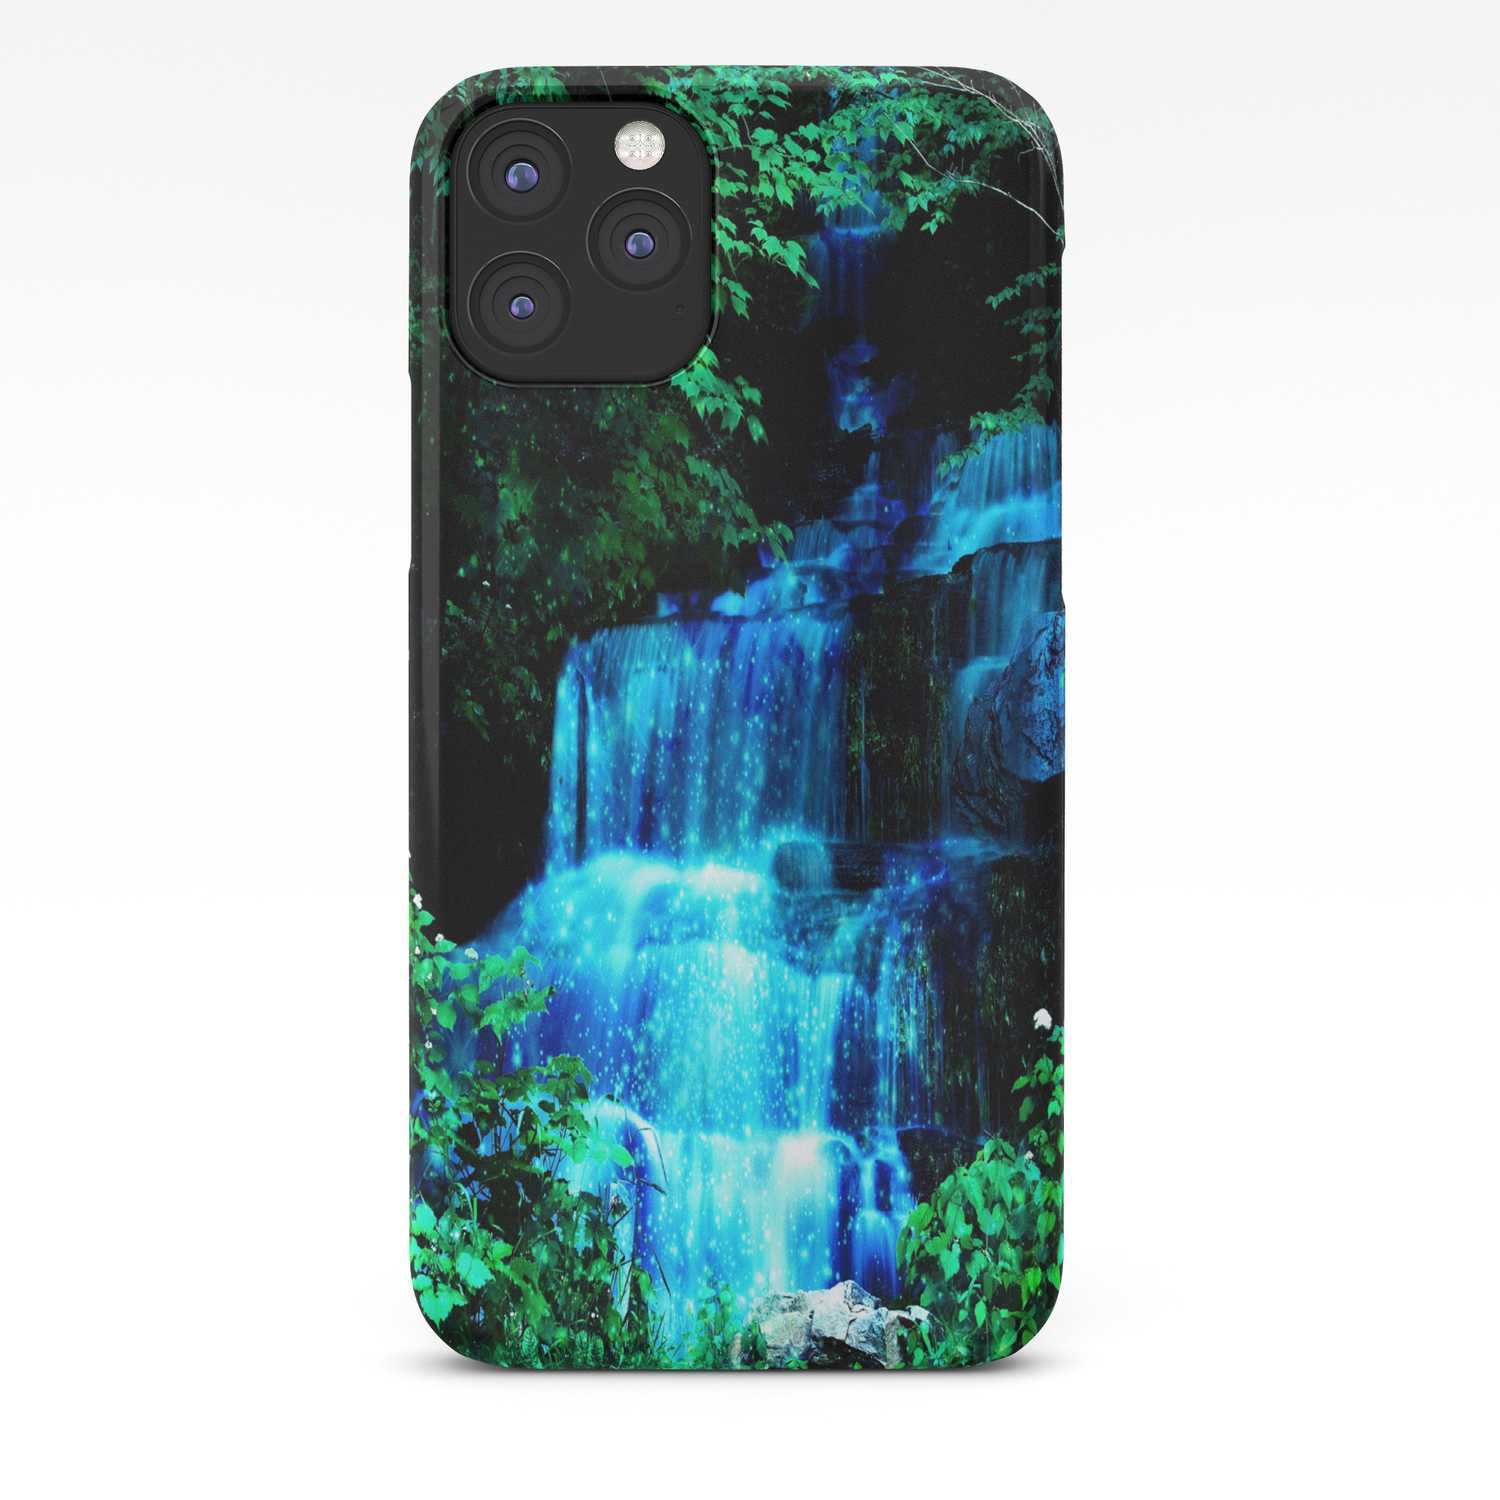 Enchanted Waterfall Iphone Case